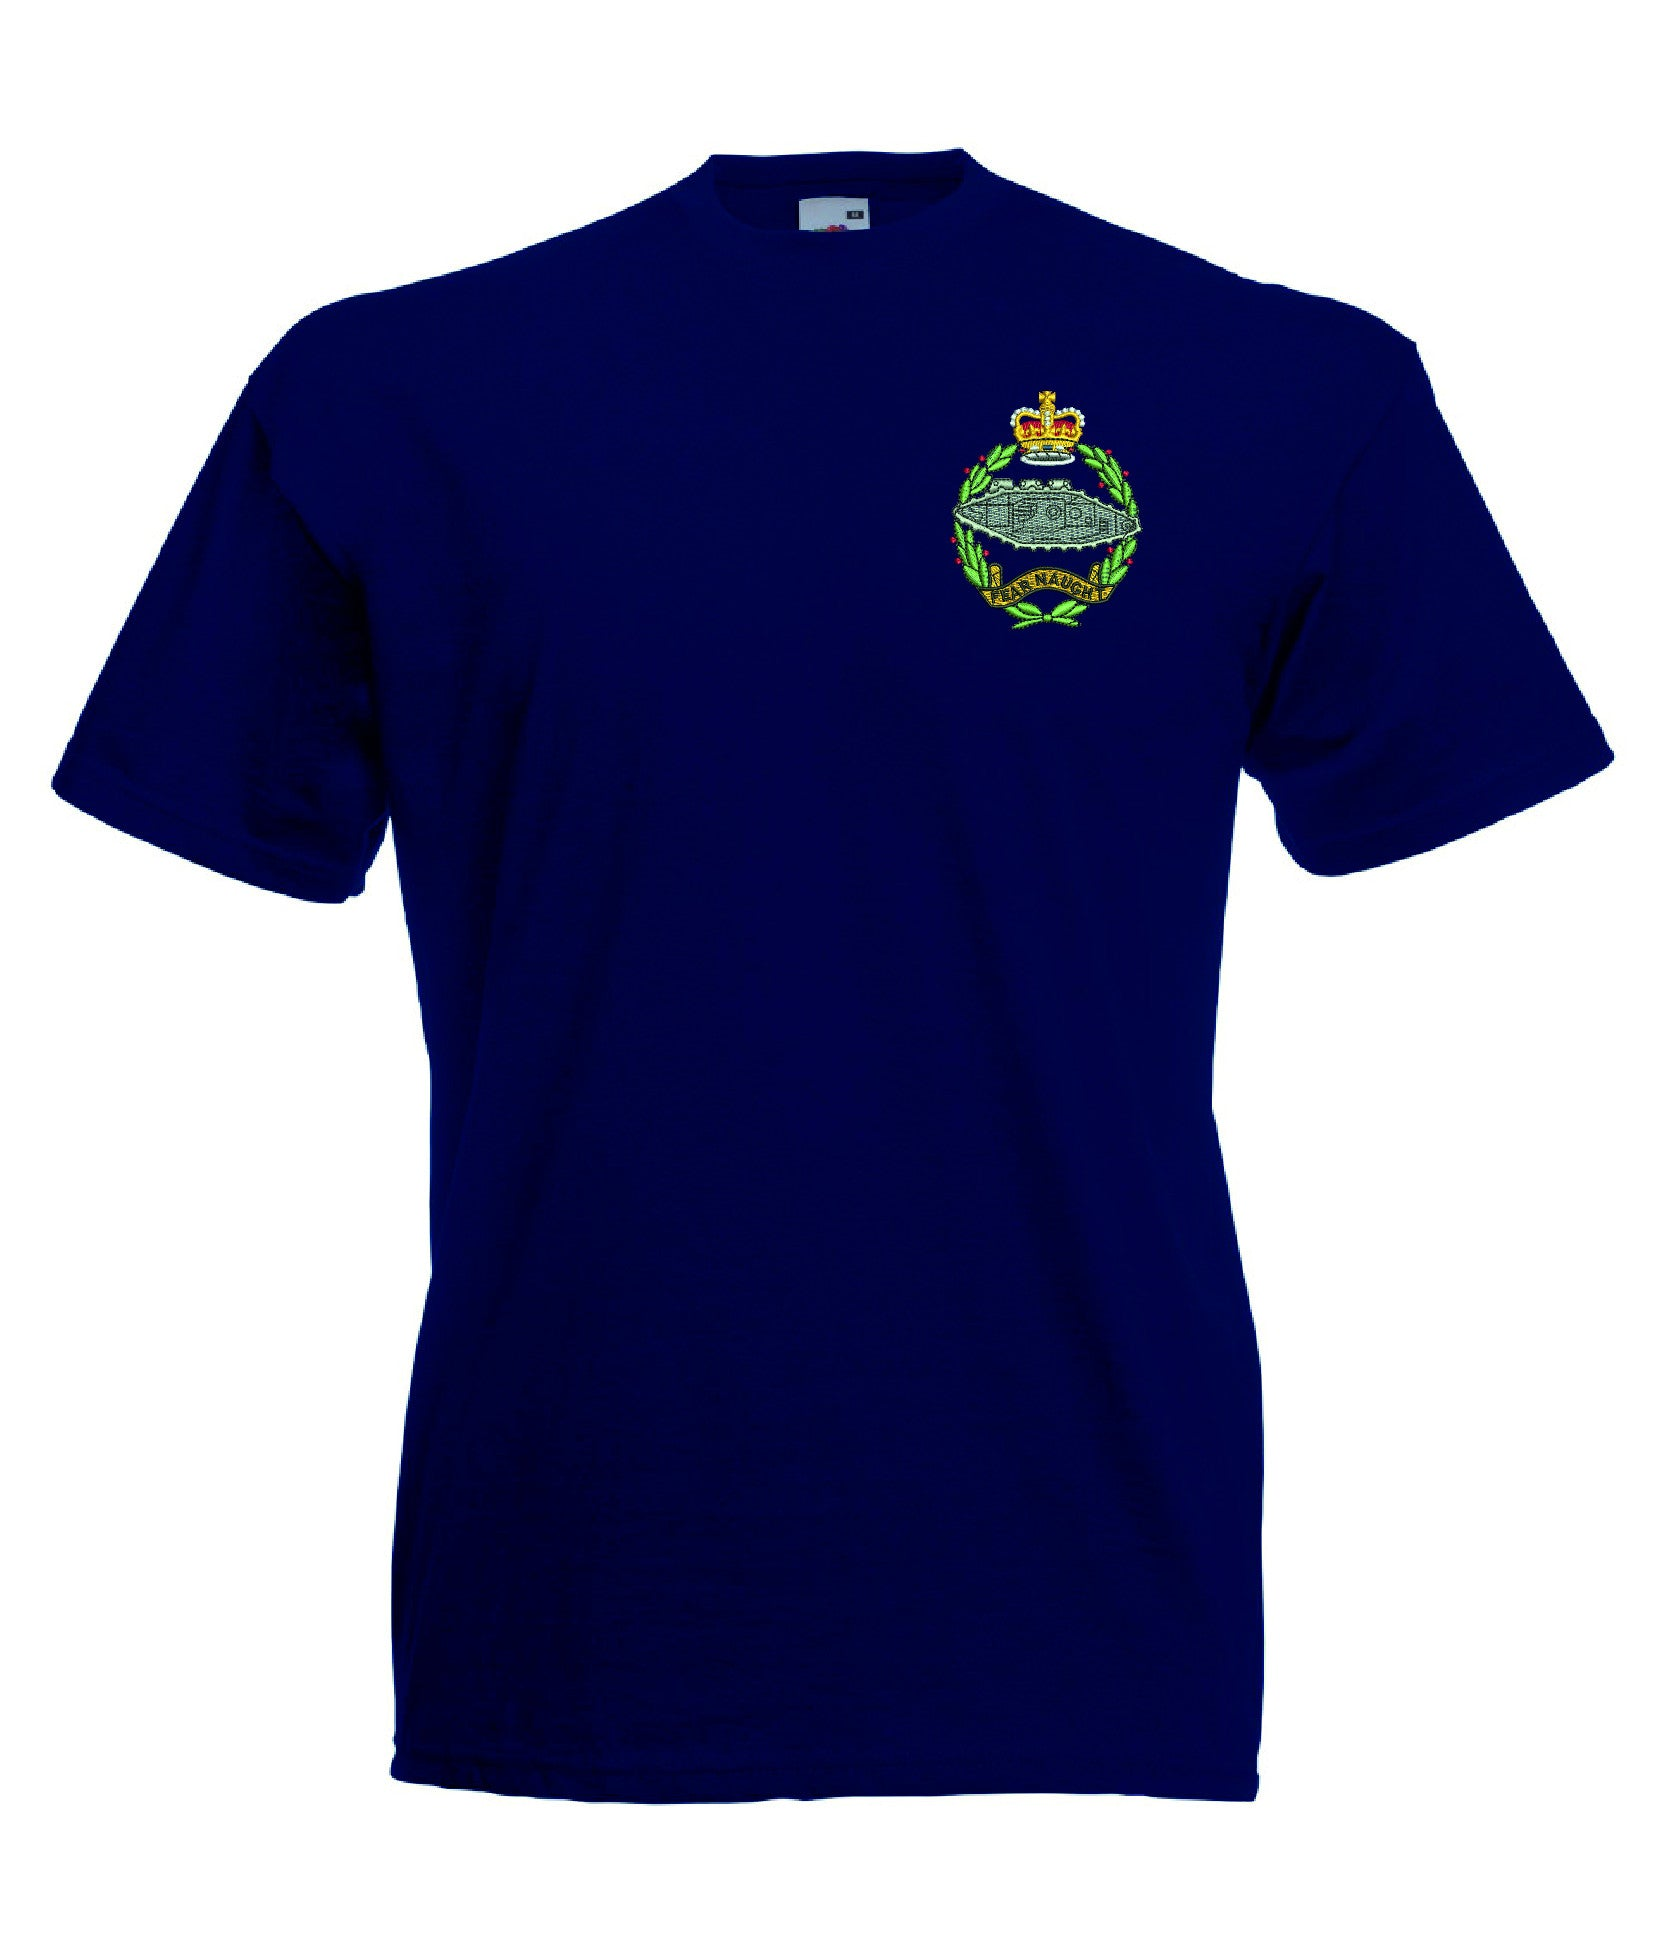 Royal Tank Regiment T Shirts